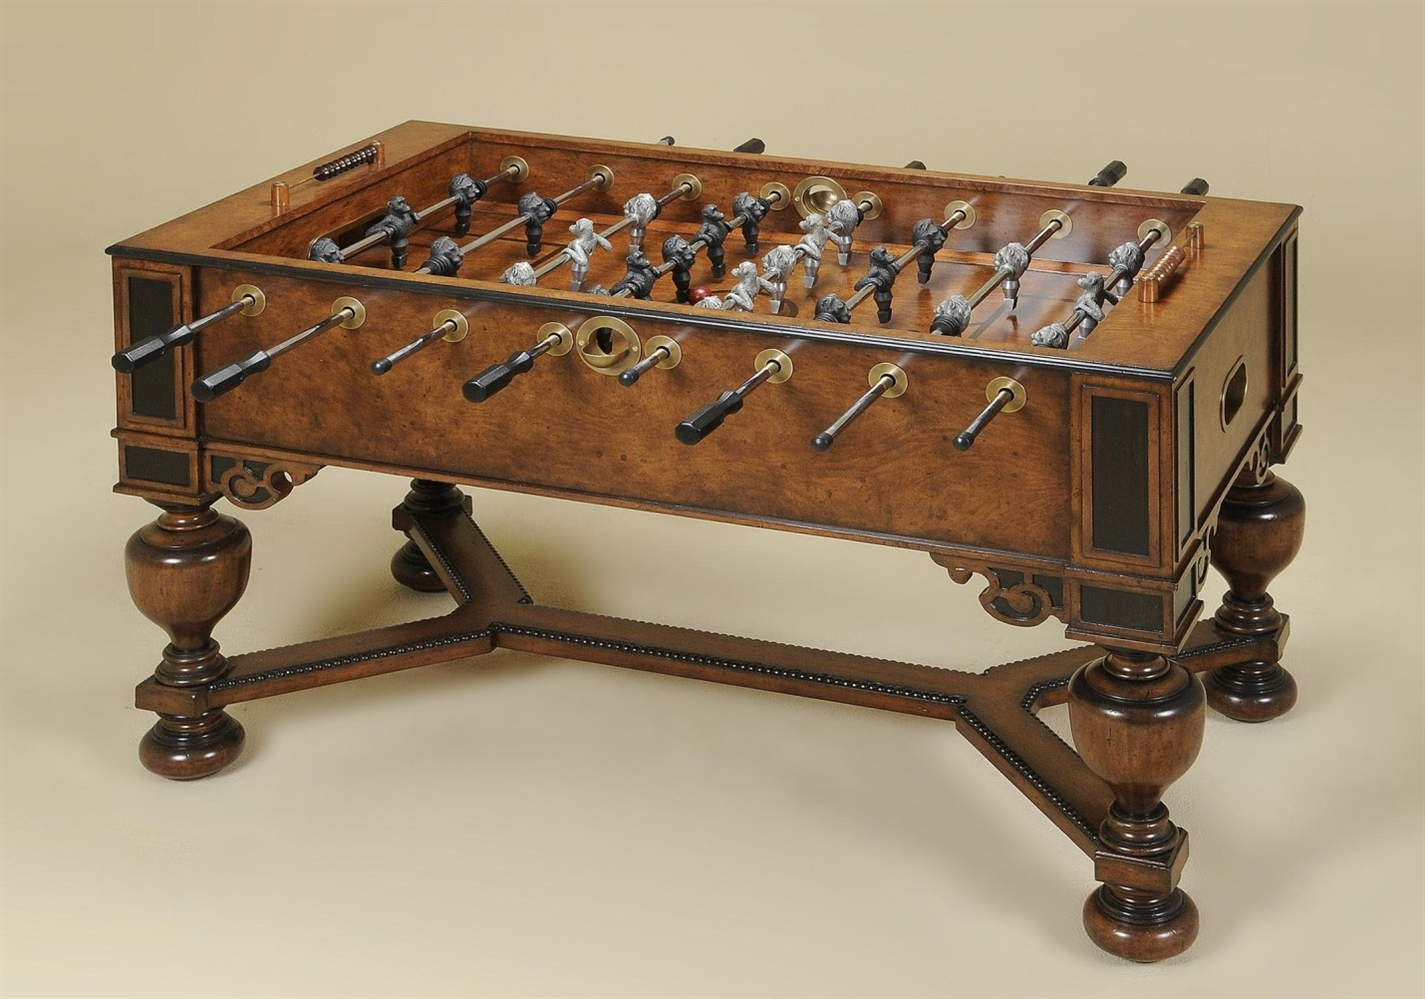 Great Dining Room Tables Comparison Of Old And Modern Foosball Tables Ref S